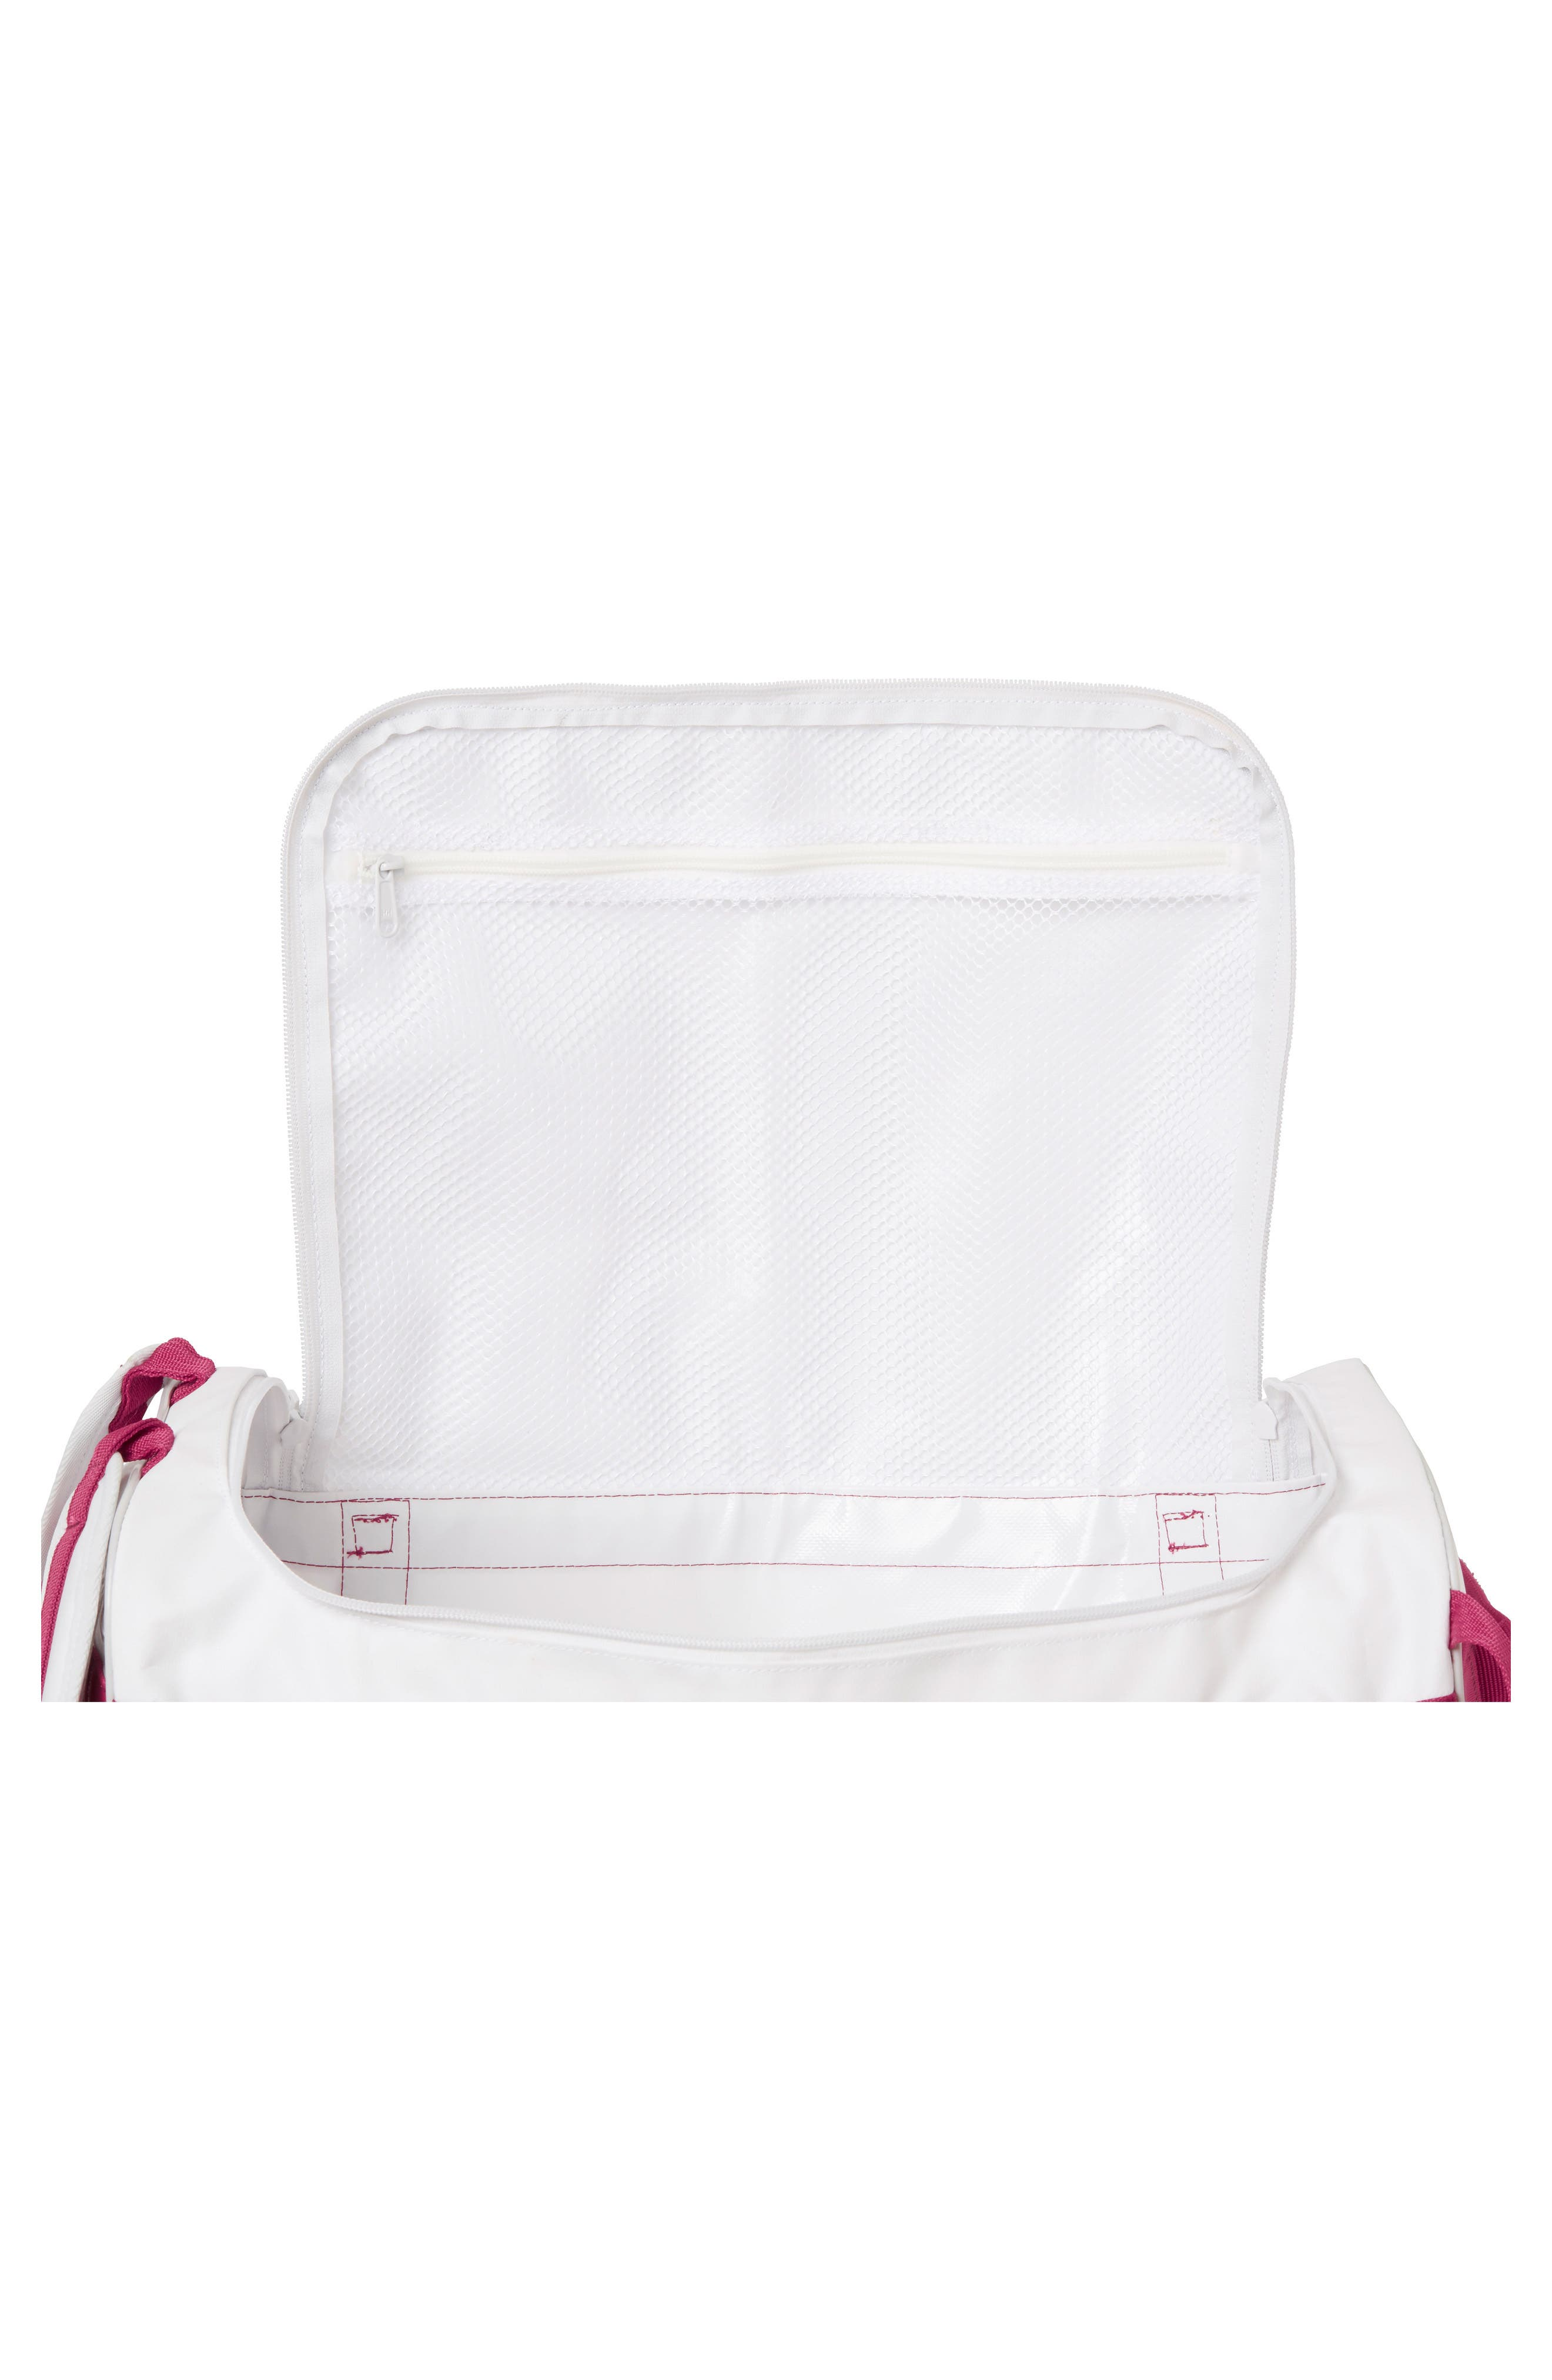 New Classic Extra Small Duffel Bag,                             Alternate thumbnail 3, color,                             White